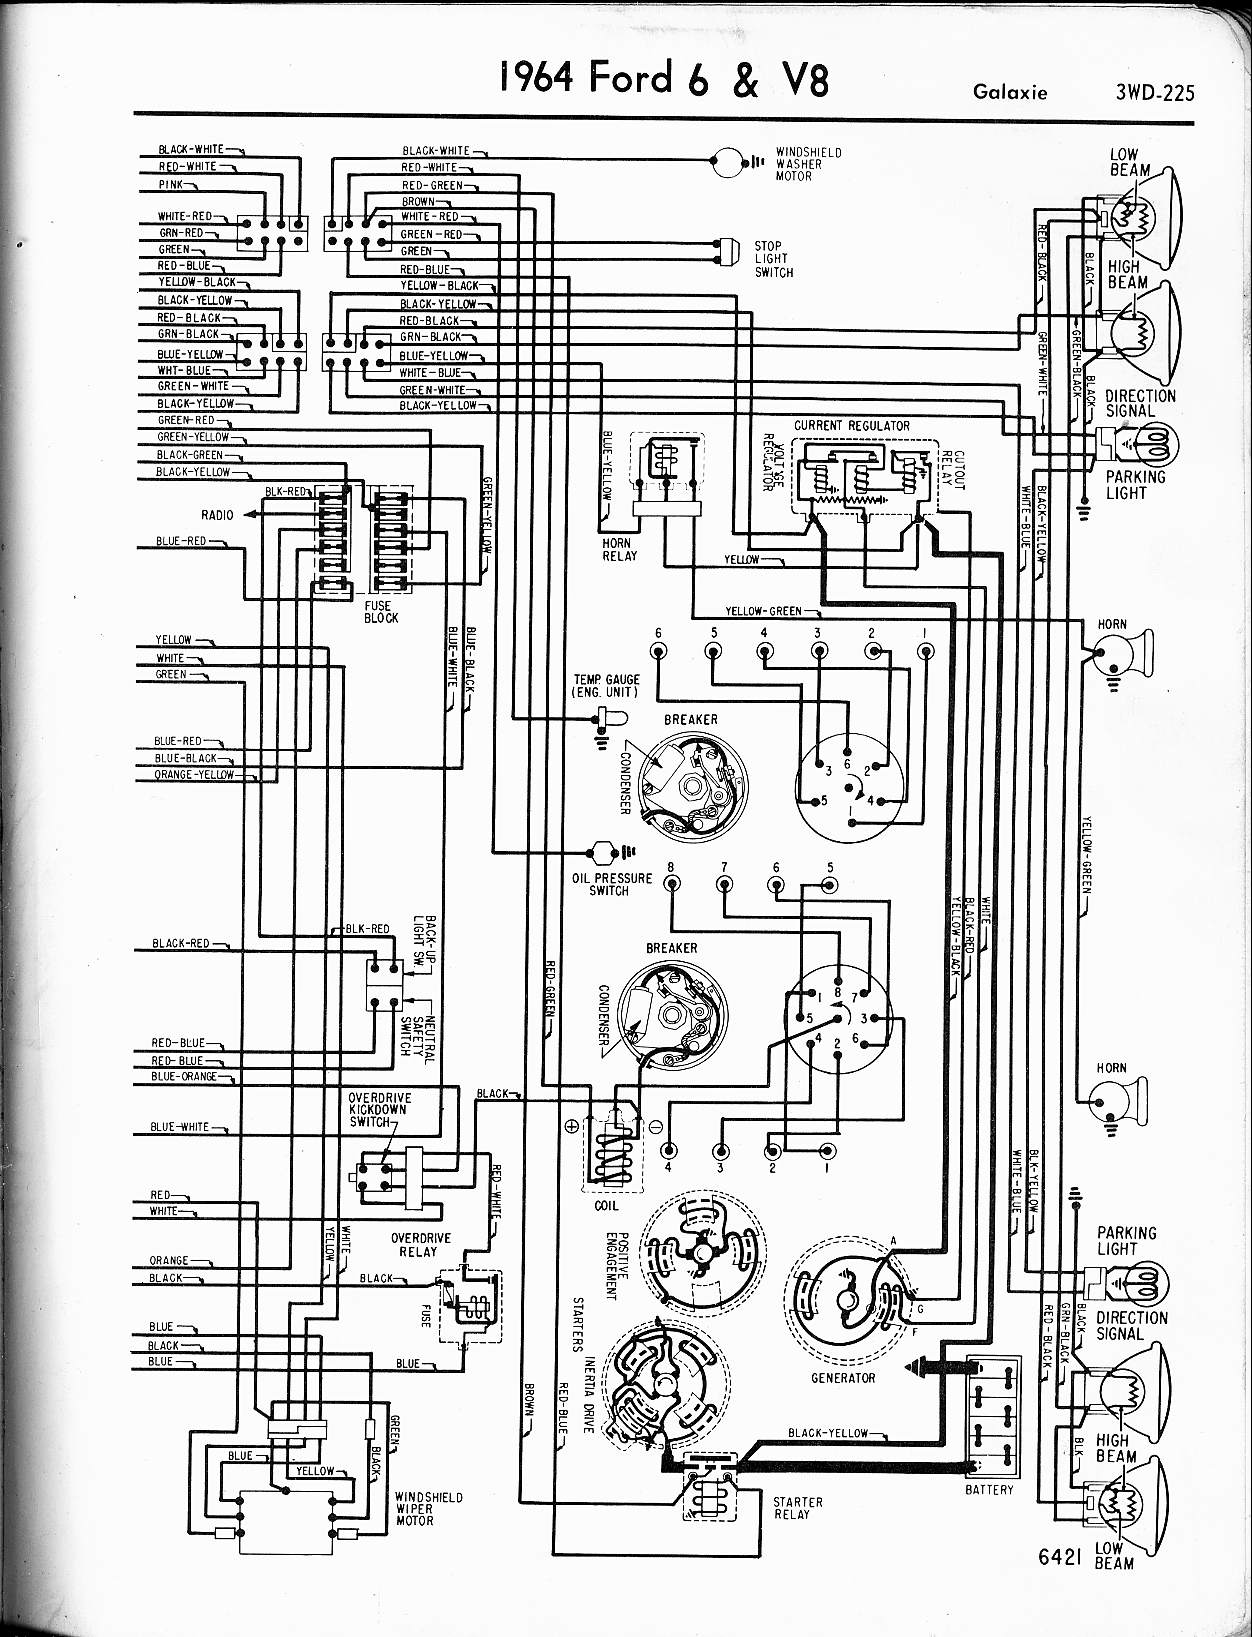 57 65 Ford Wiring Diagrams Cars Diagram 1964 6 V8 Galaxie Right